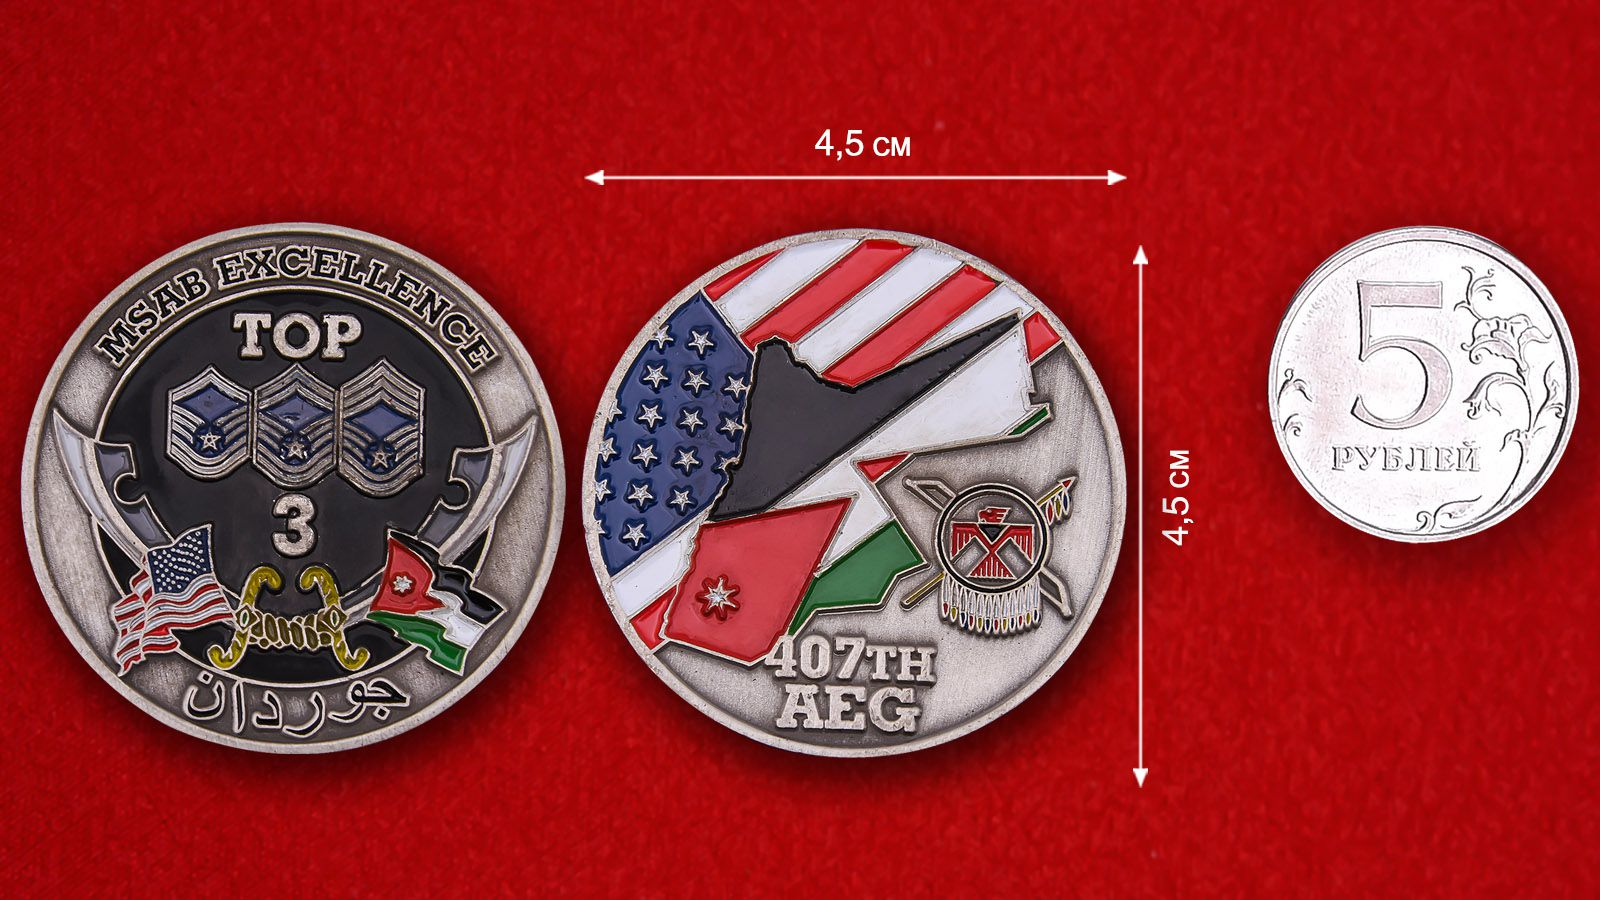 Challenge Coin 407th Expeditionary Air Group, the US Air Force - comparative size